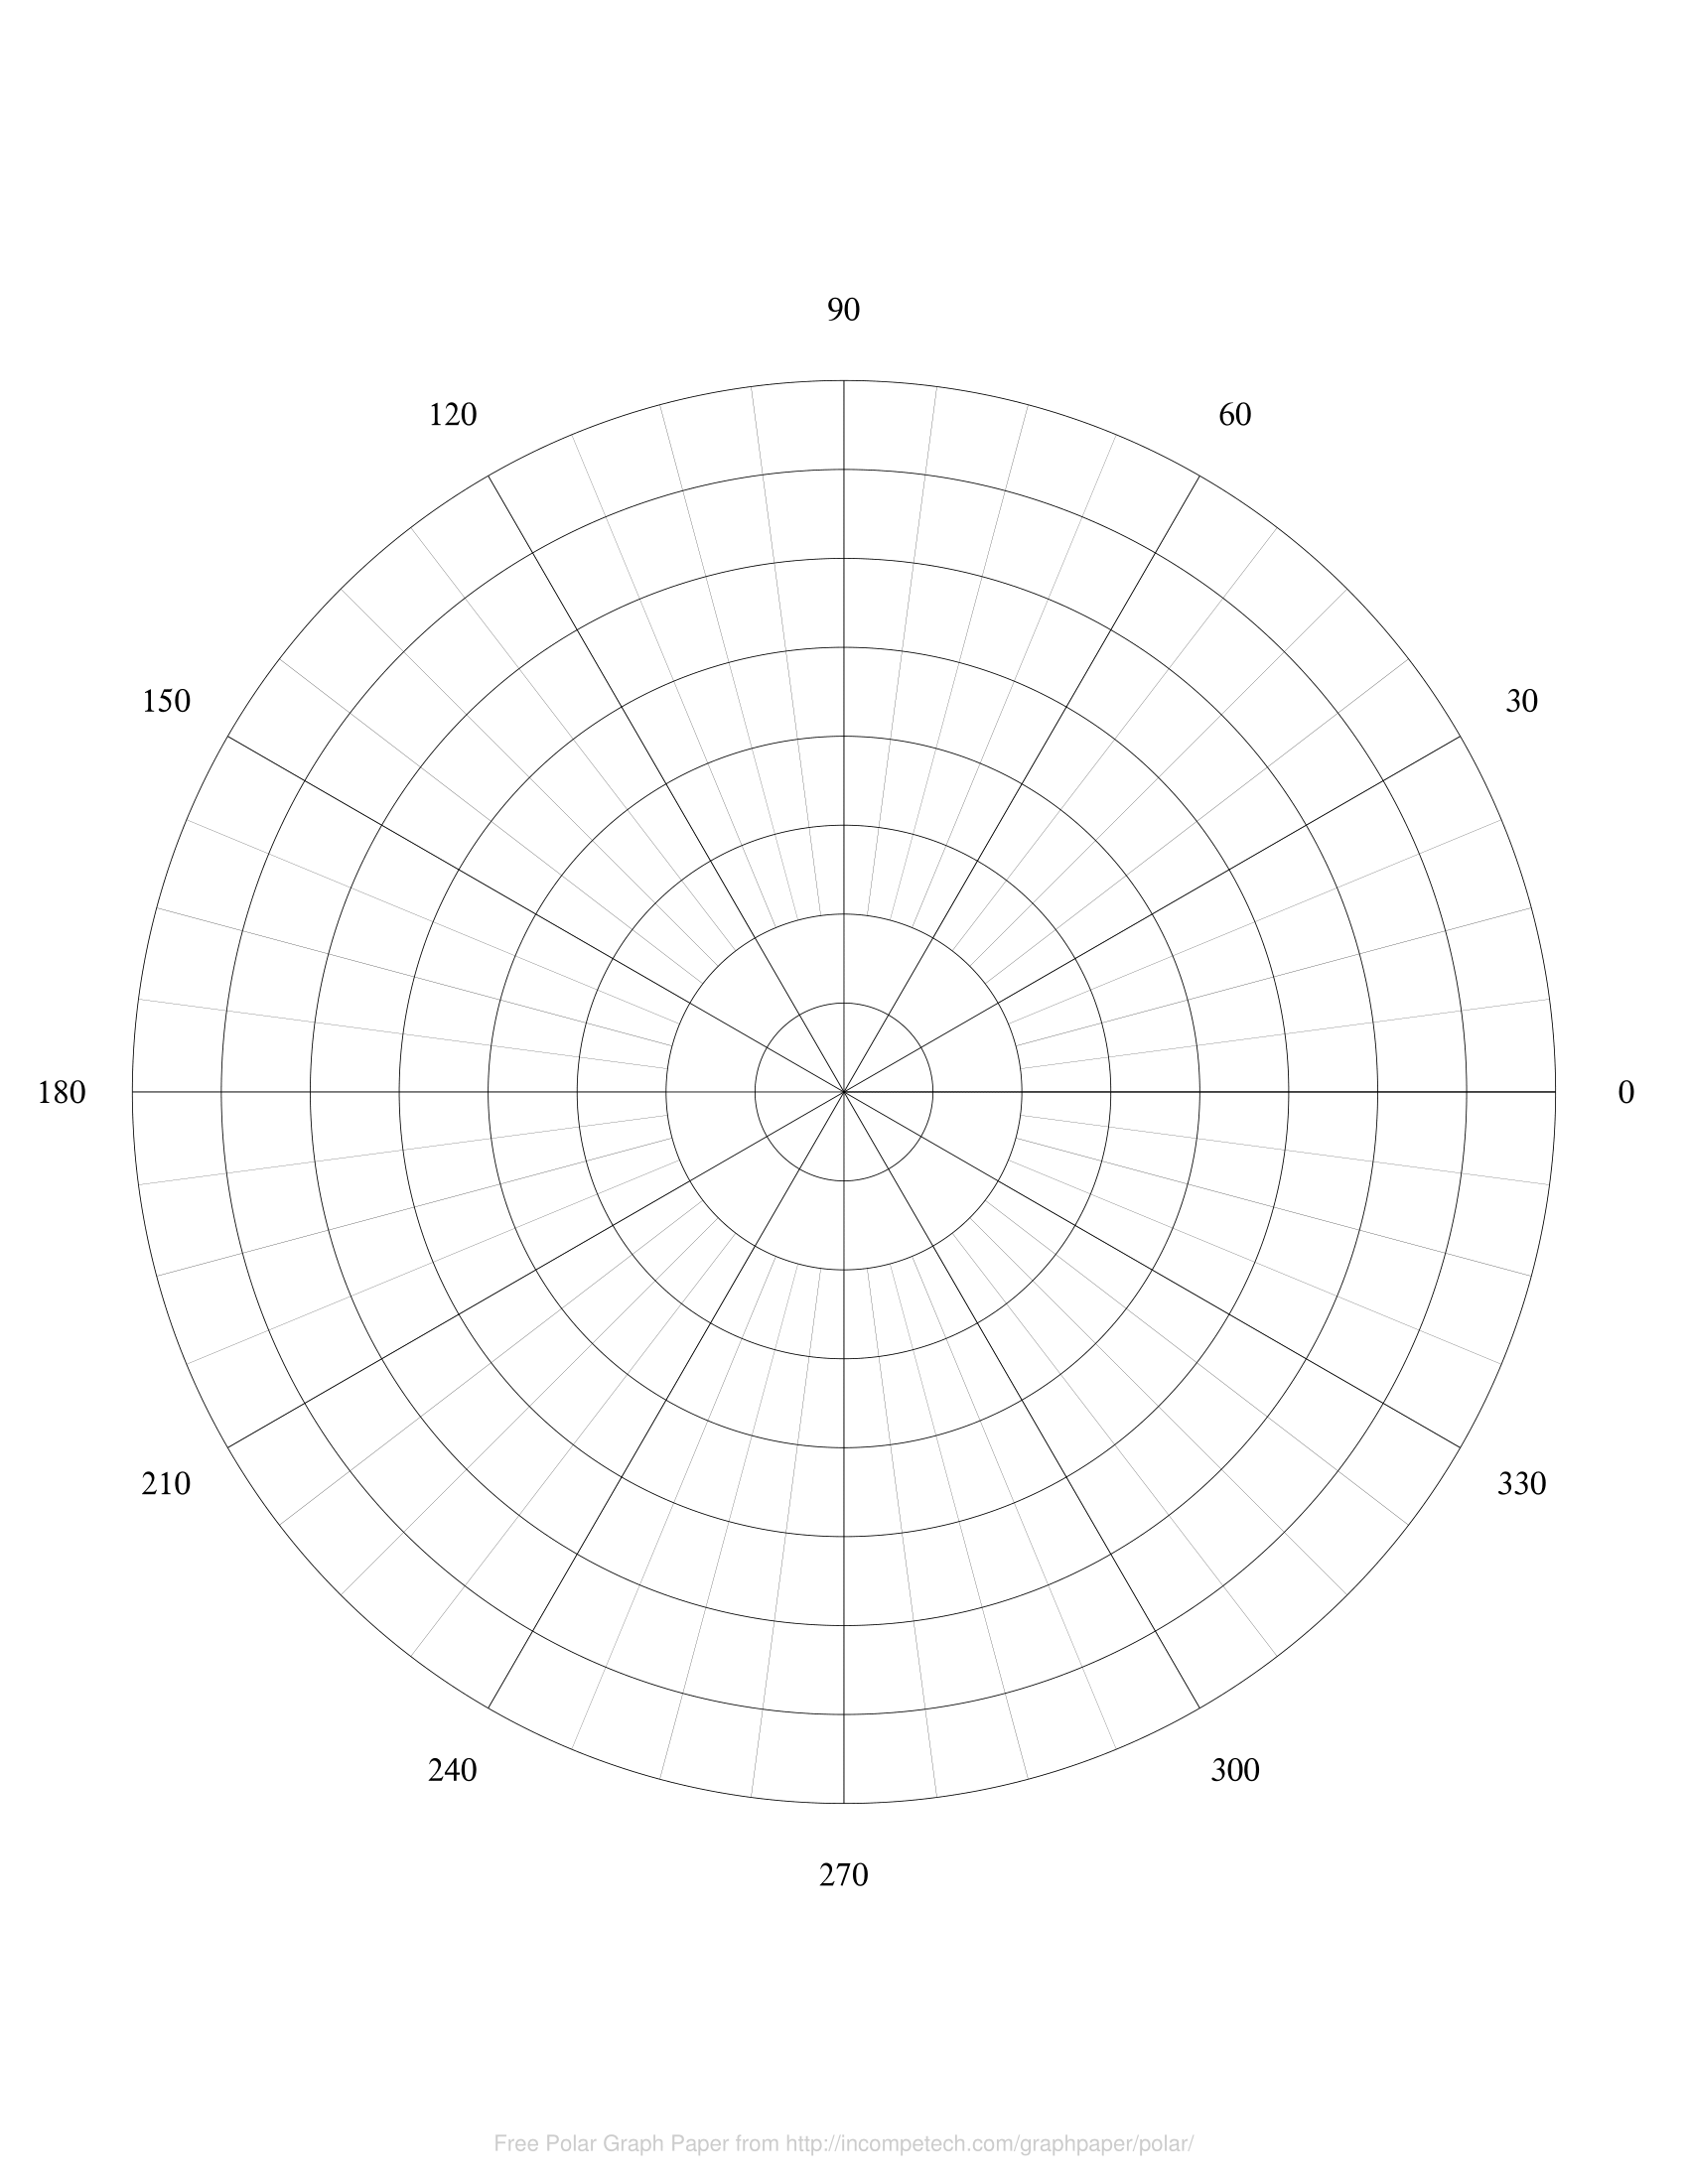 Free Online Graph Paper Polar In